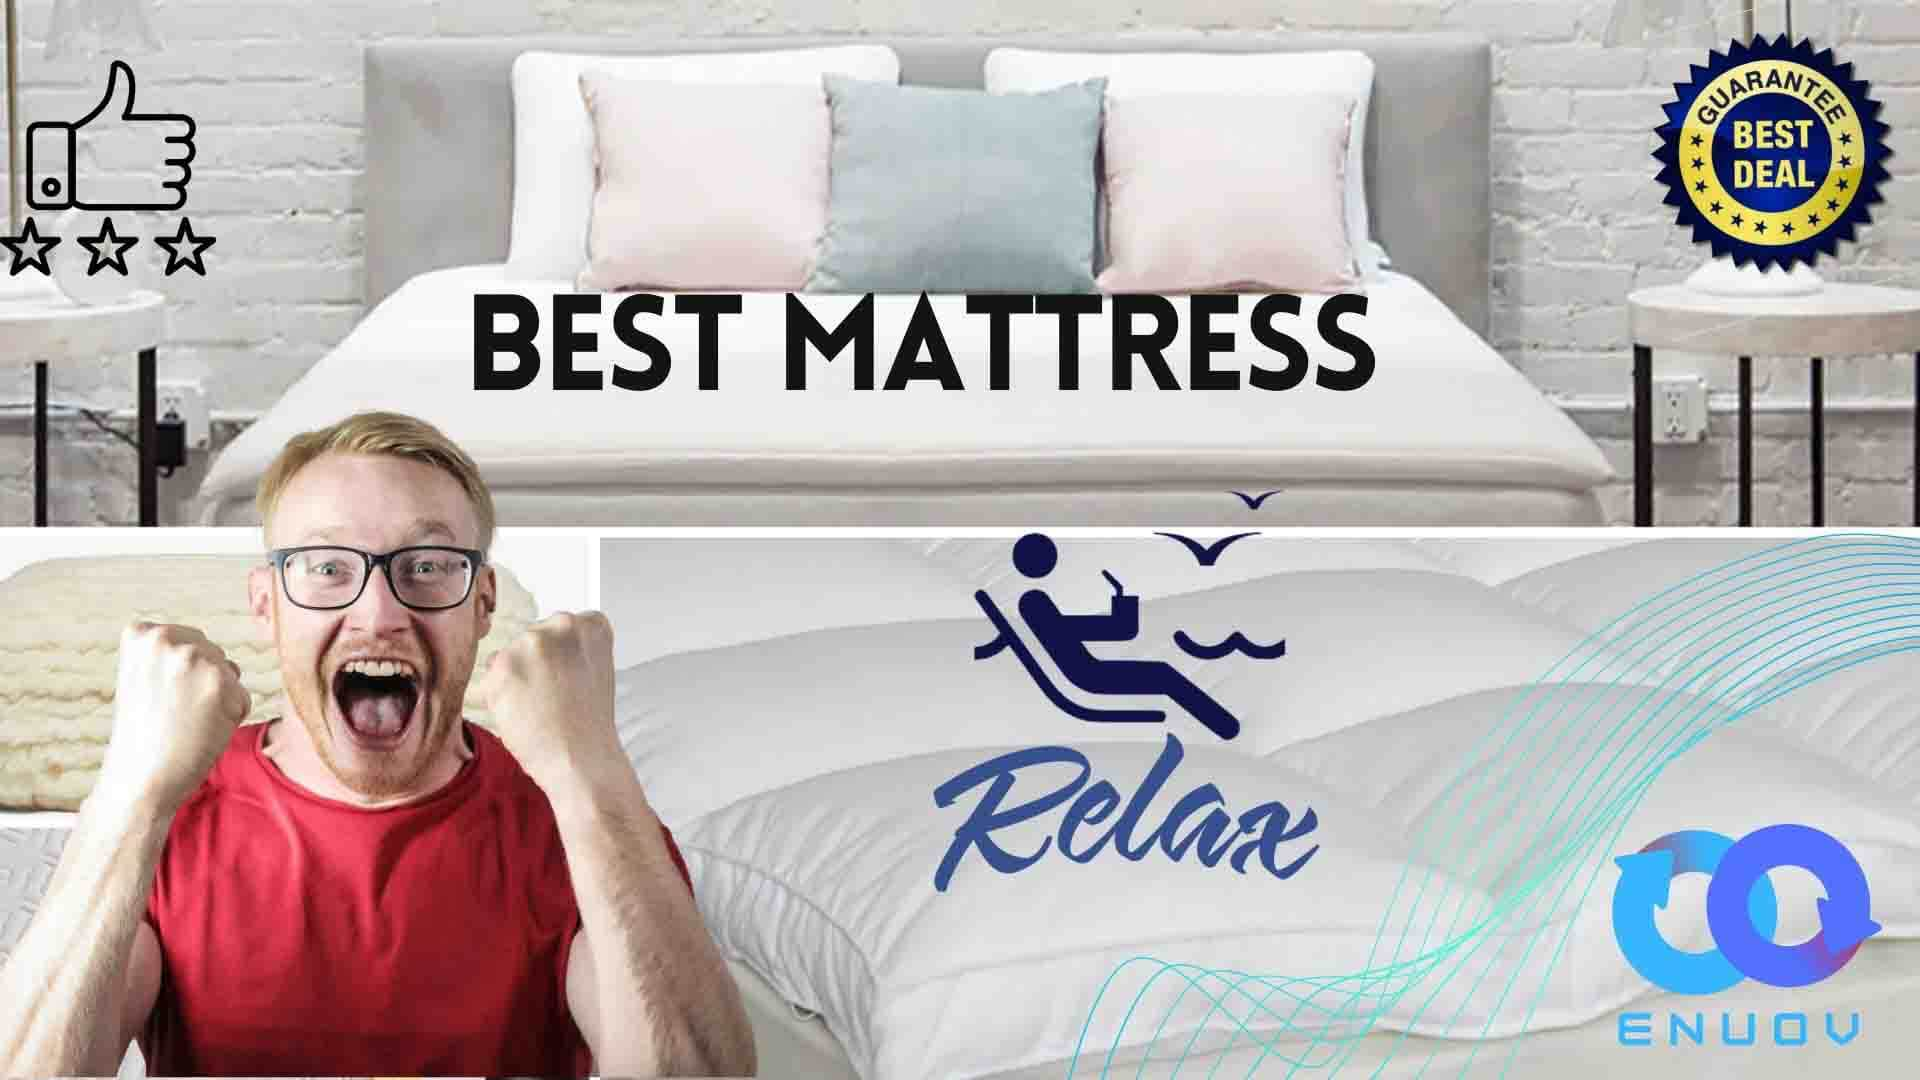 Best Mattress Topper for back pain 2021 with consumer reports including amazon best deal